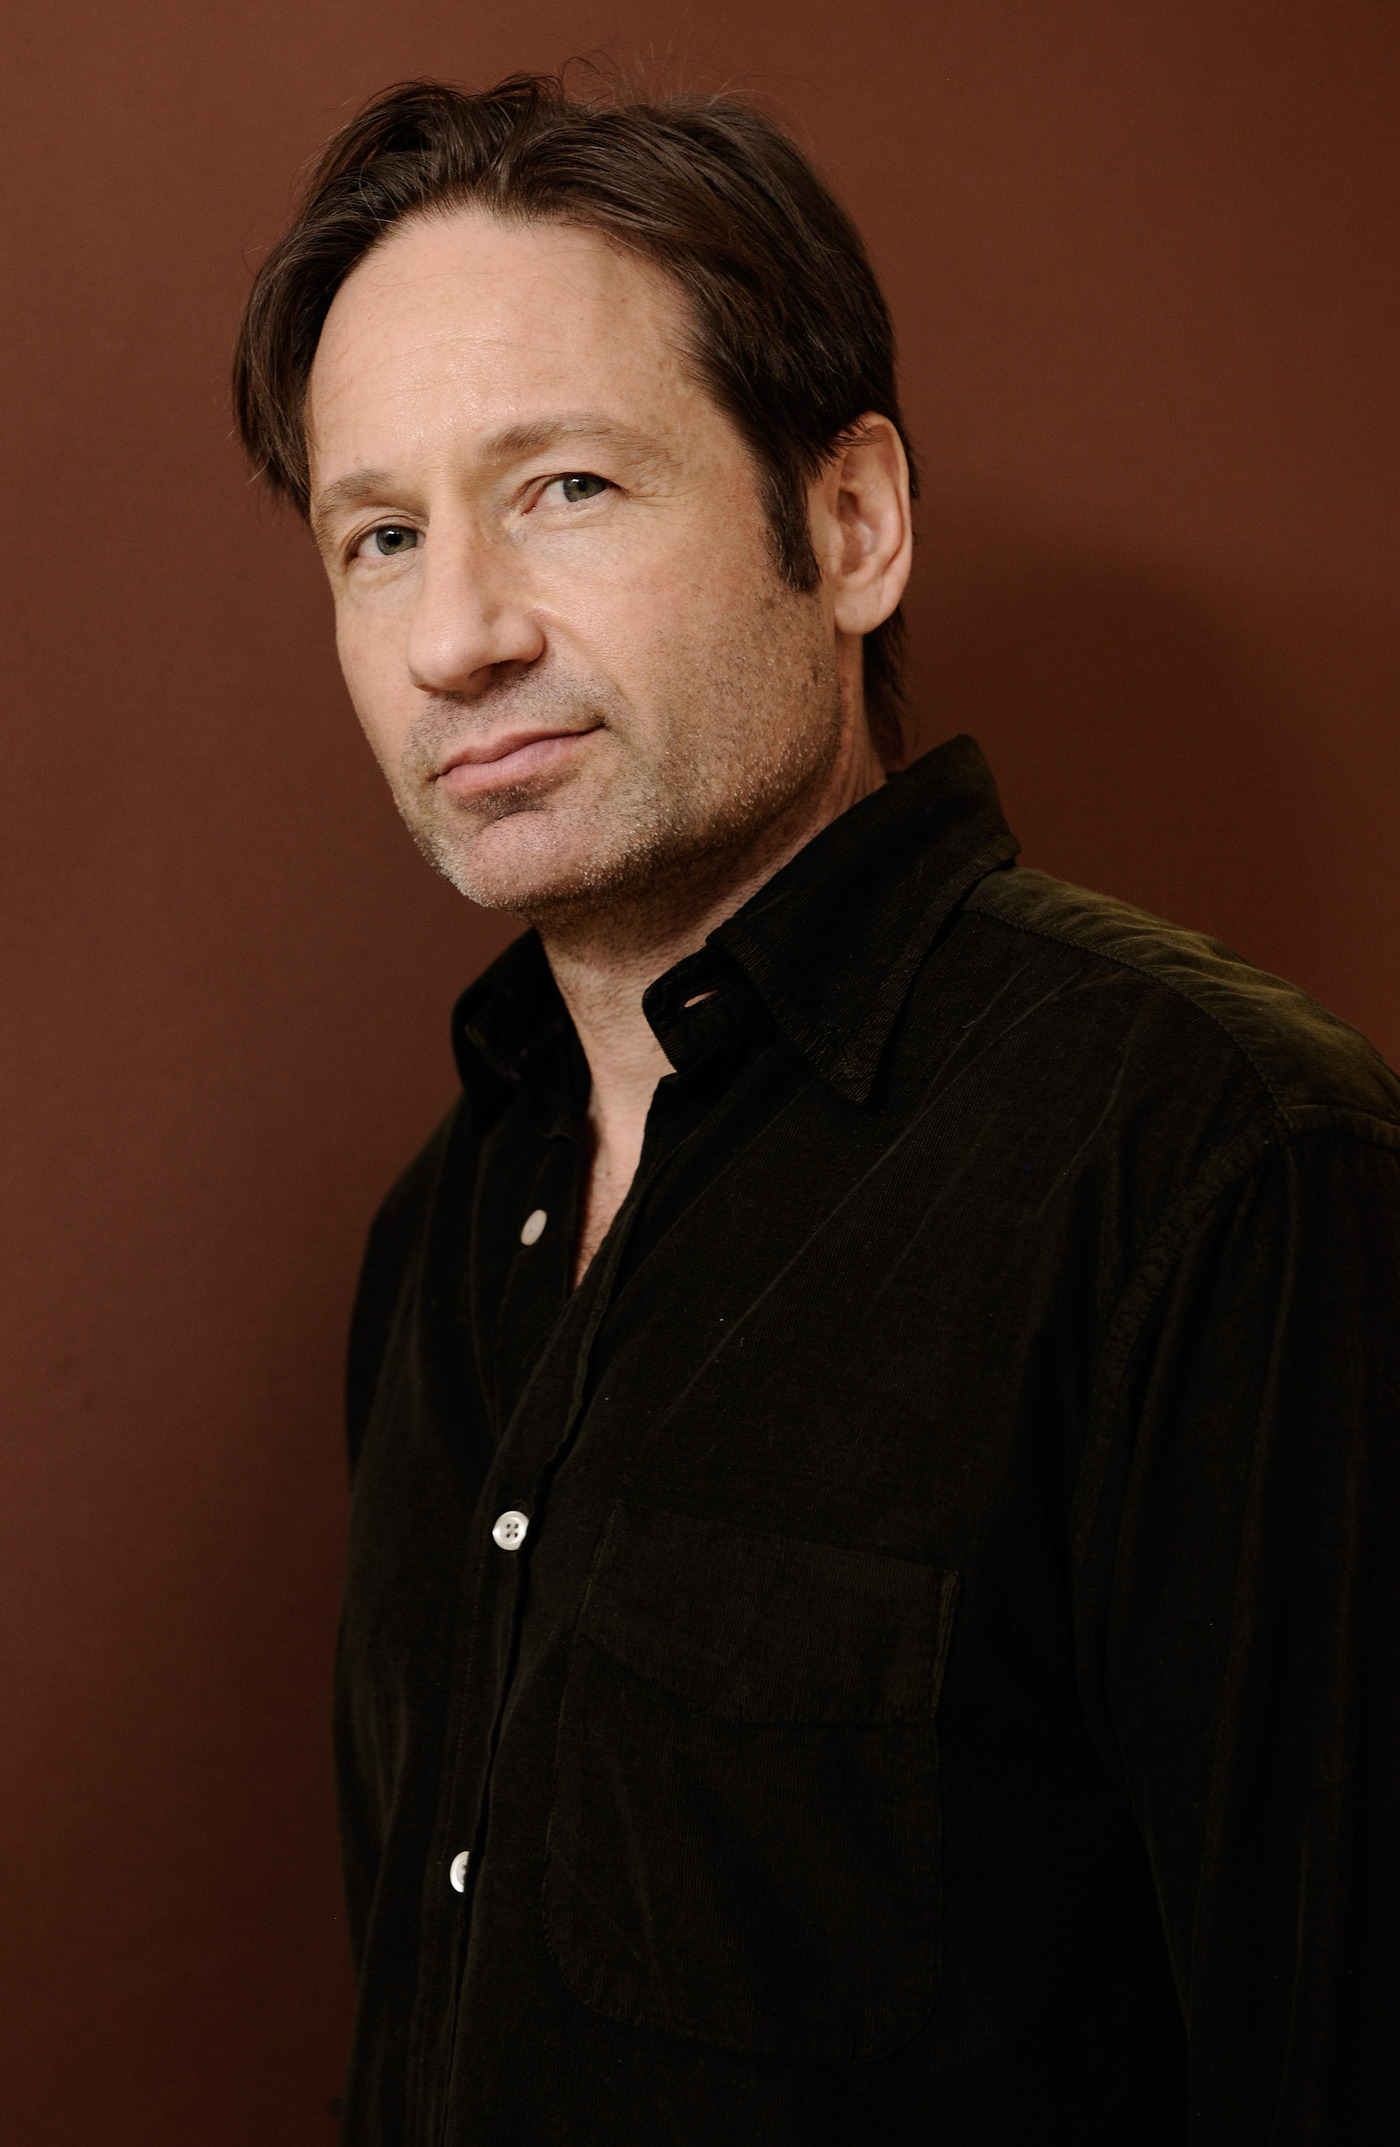 The Movie David Duchovny Has 'Seen A Million Times' : NPR